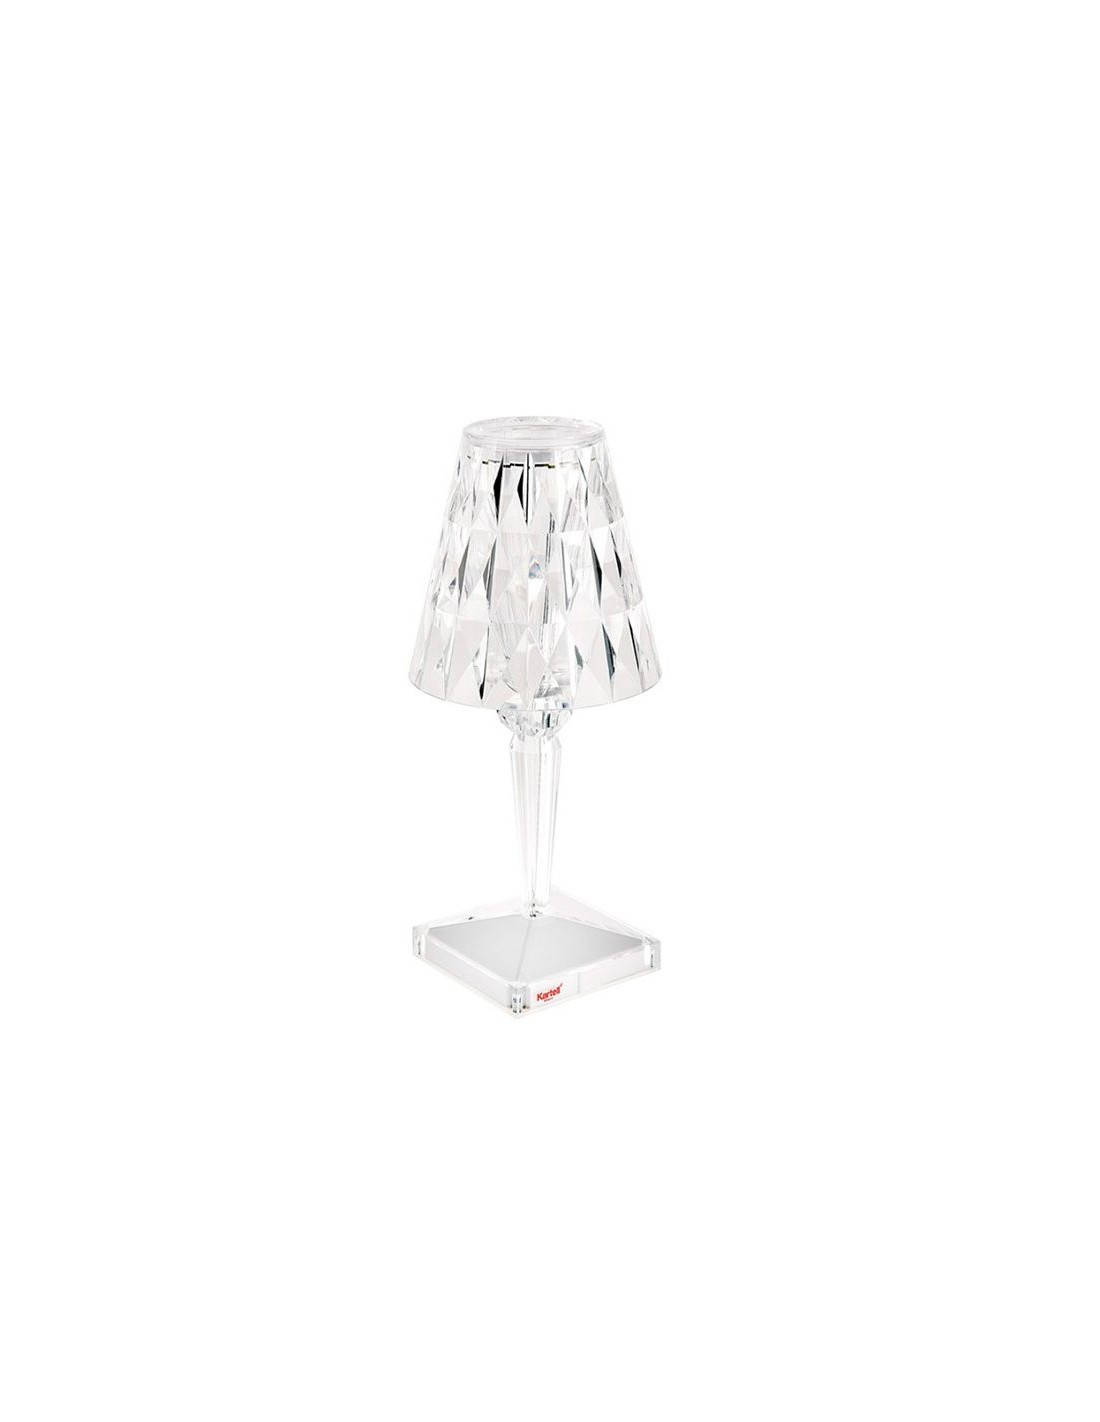 lampe de table sans fil battery cristal pour la marque kartell. Black Bedroom Furniture Sets. Home Design Ideas